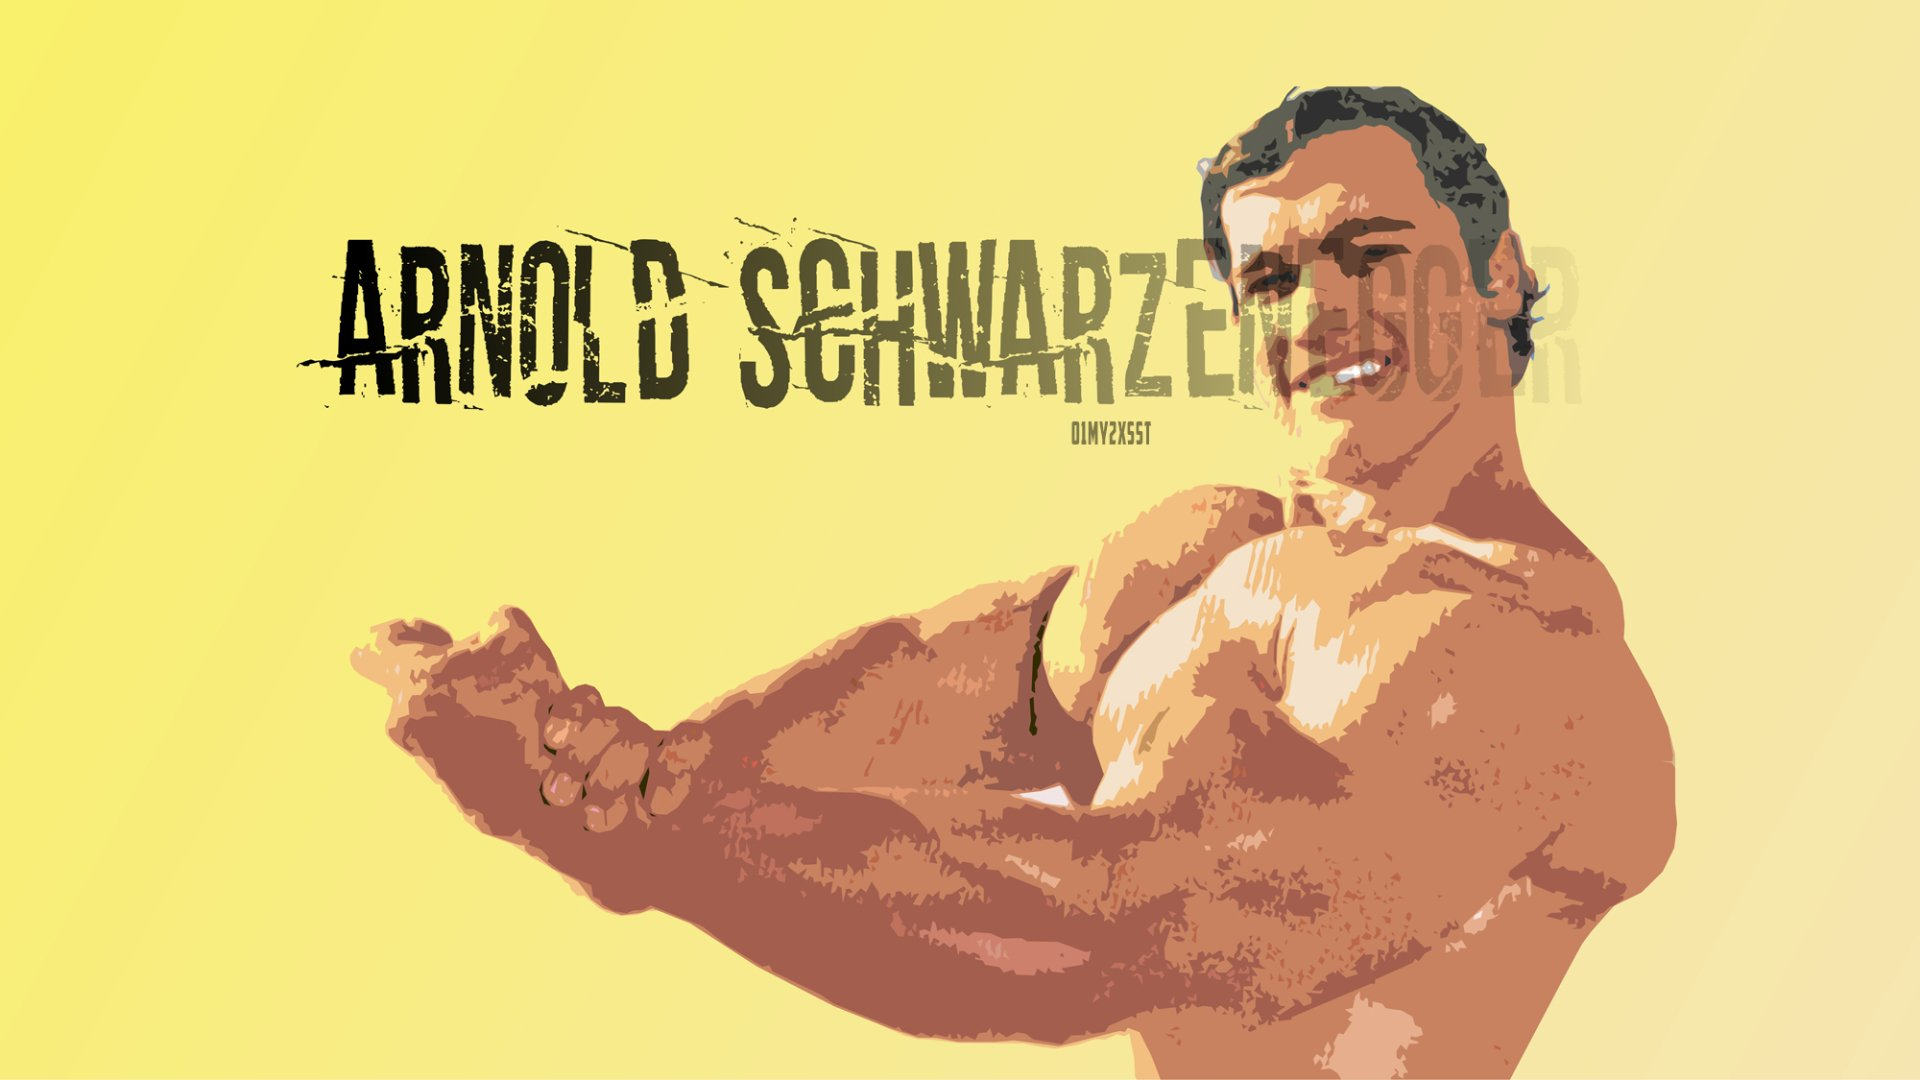 Celebrity - Arnold Schwarzenegger  Actor Bodybuilding Muscle Artwork Portrait Retro Wallpaper